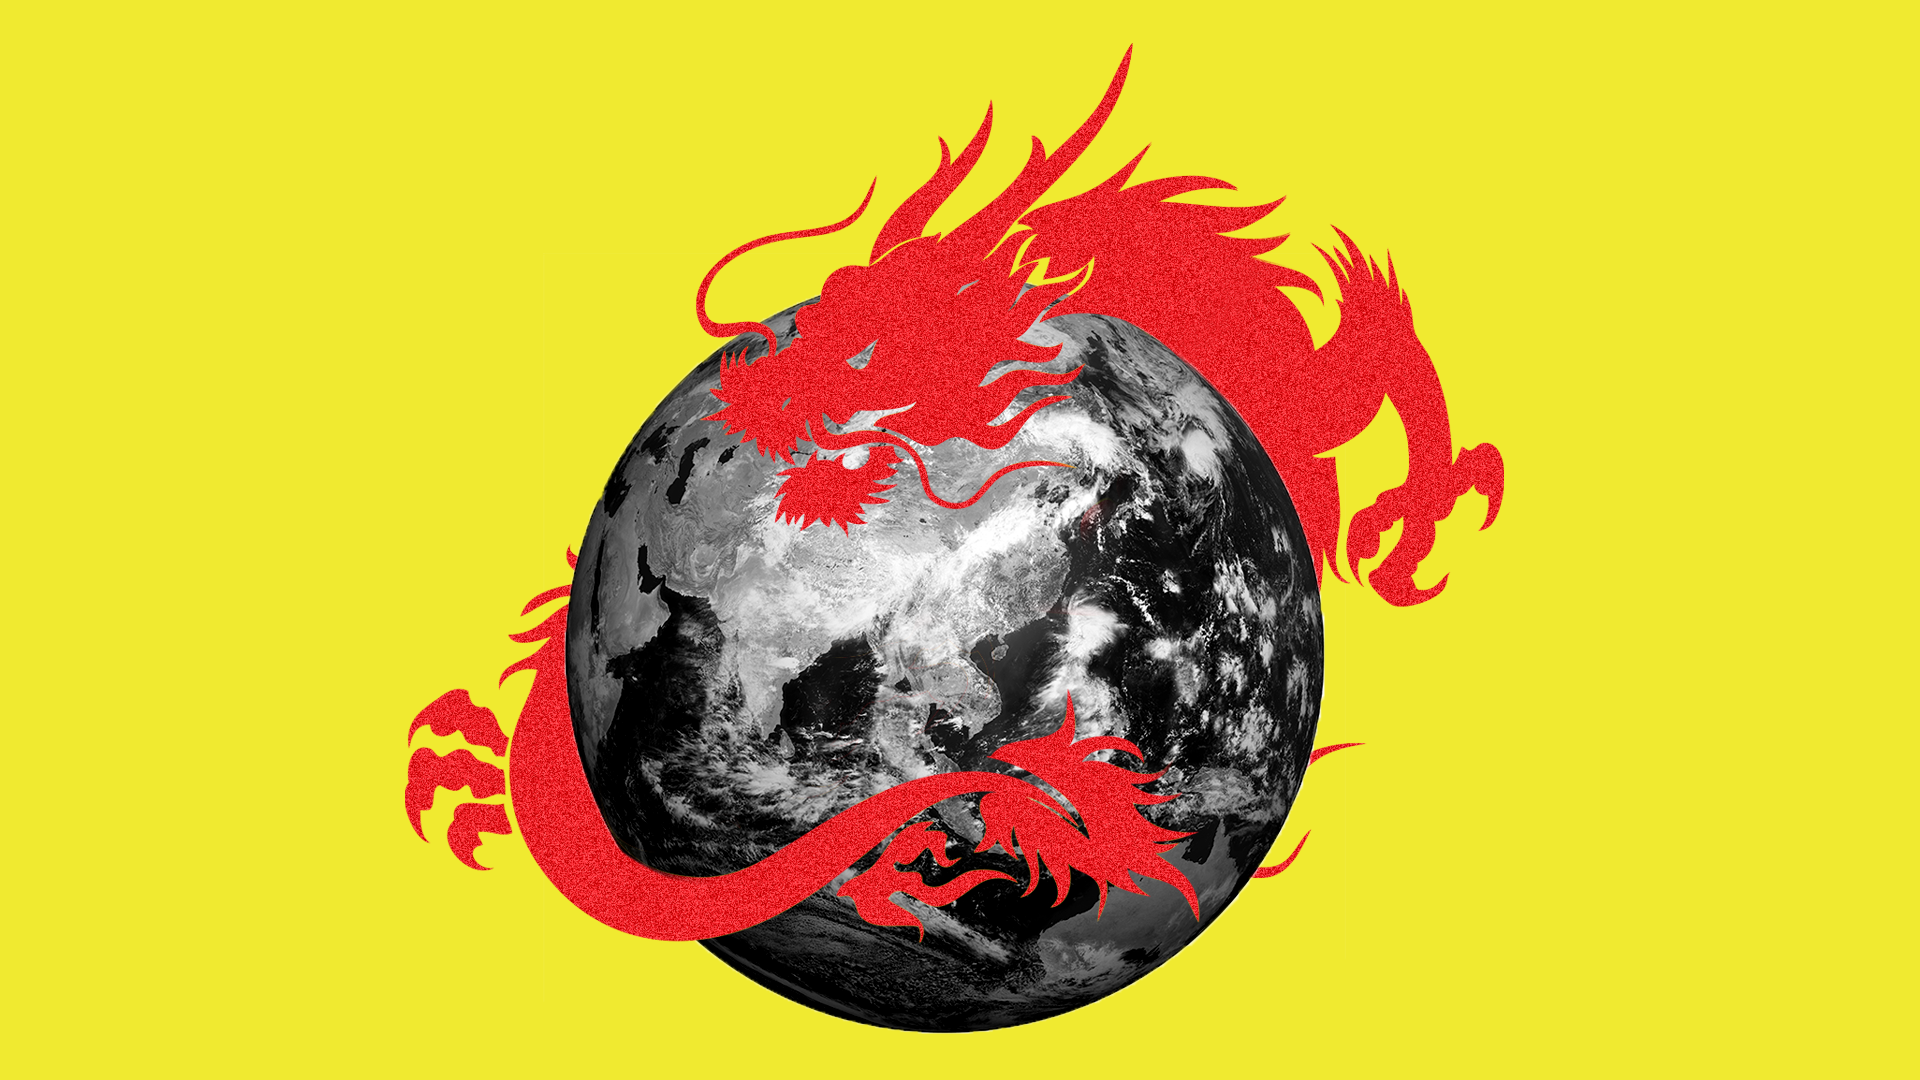 An illustration of a red dragon surrounding the world.